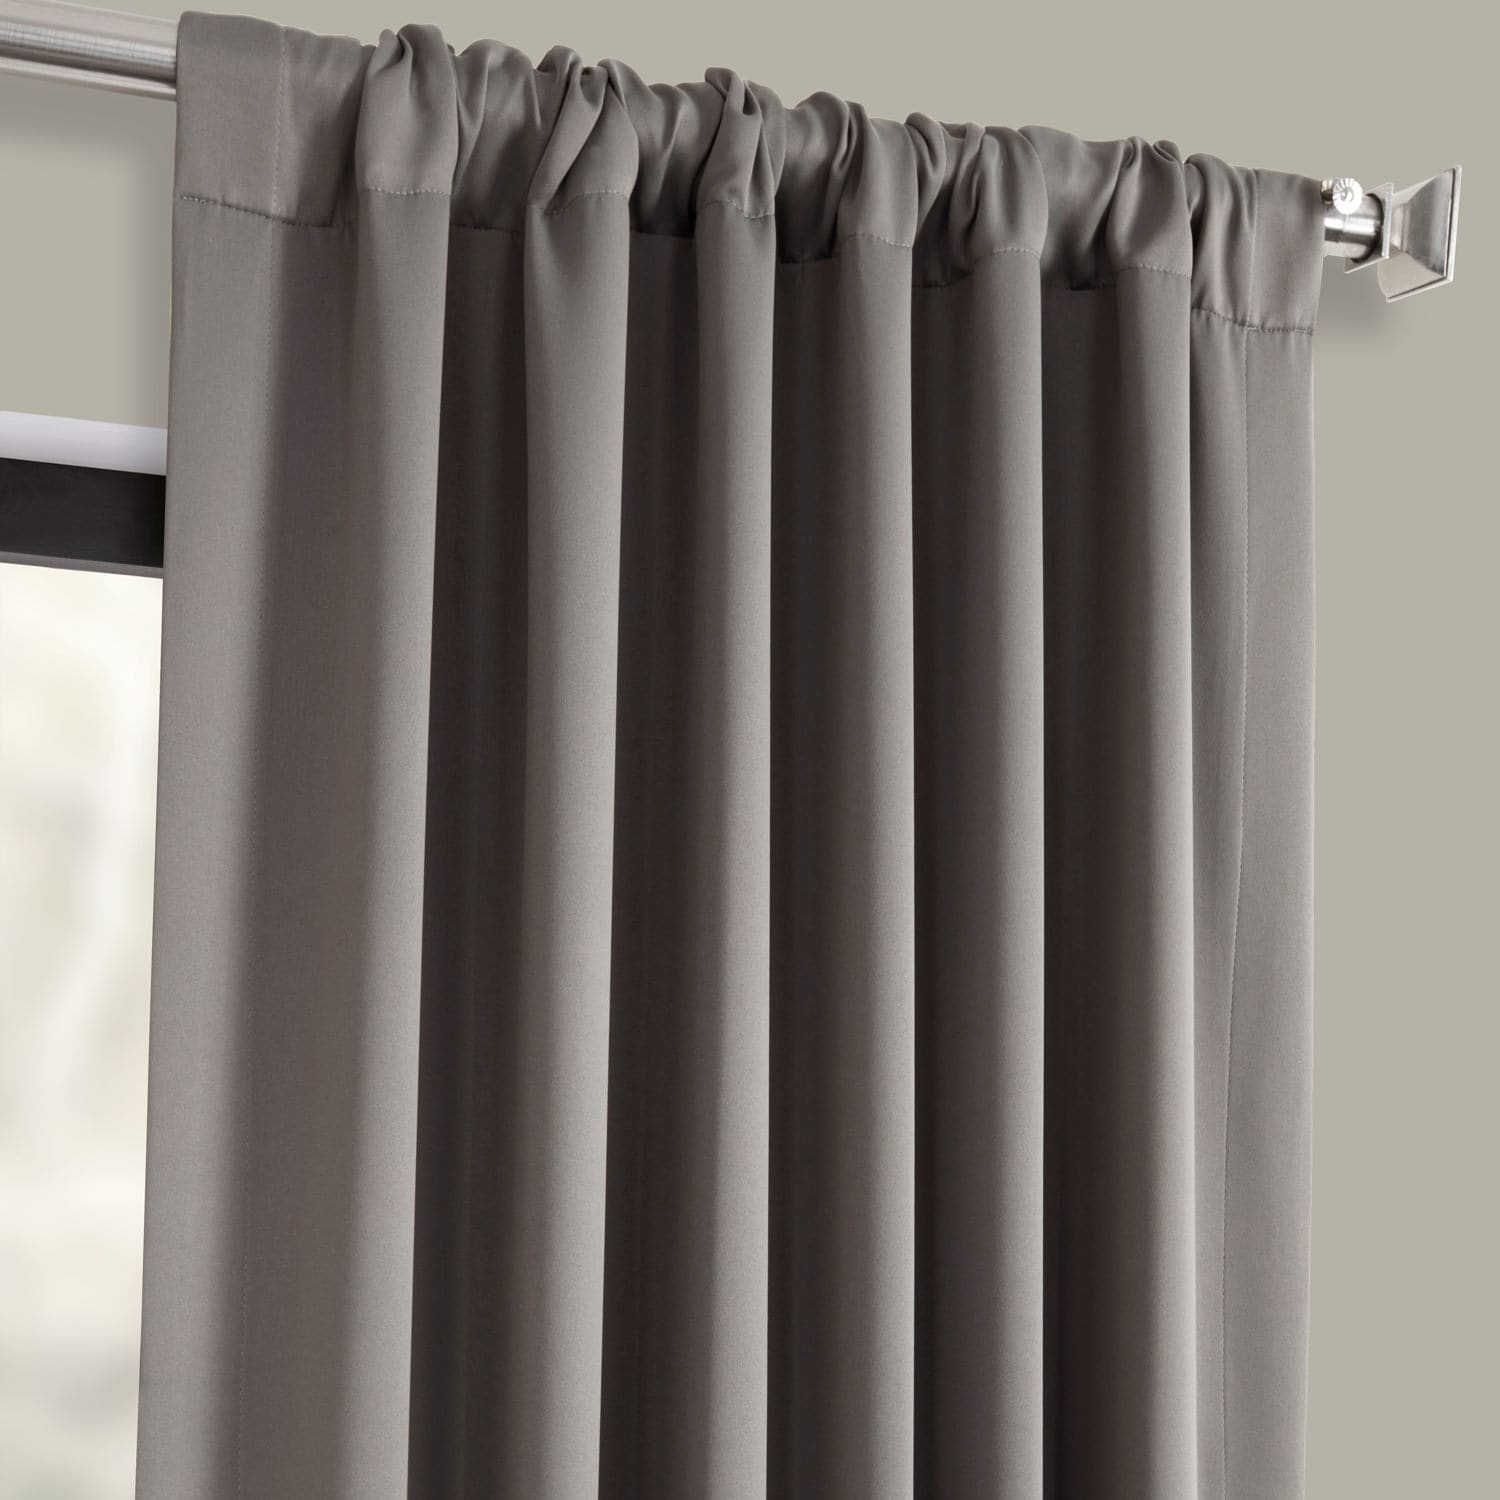 Neutral Grey Pole Pocket Blackout Room Darkening Curtain